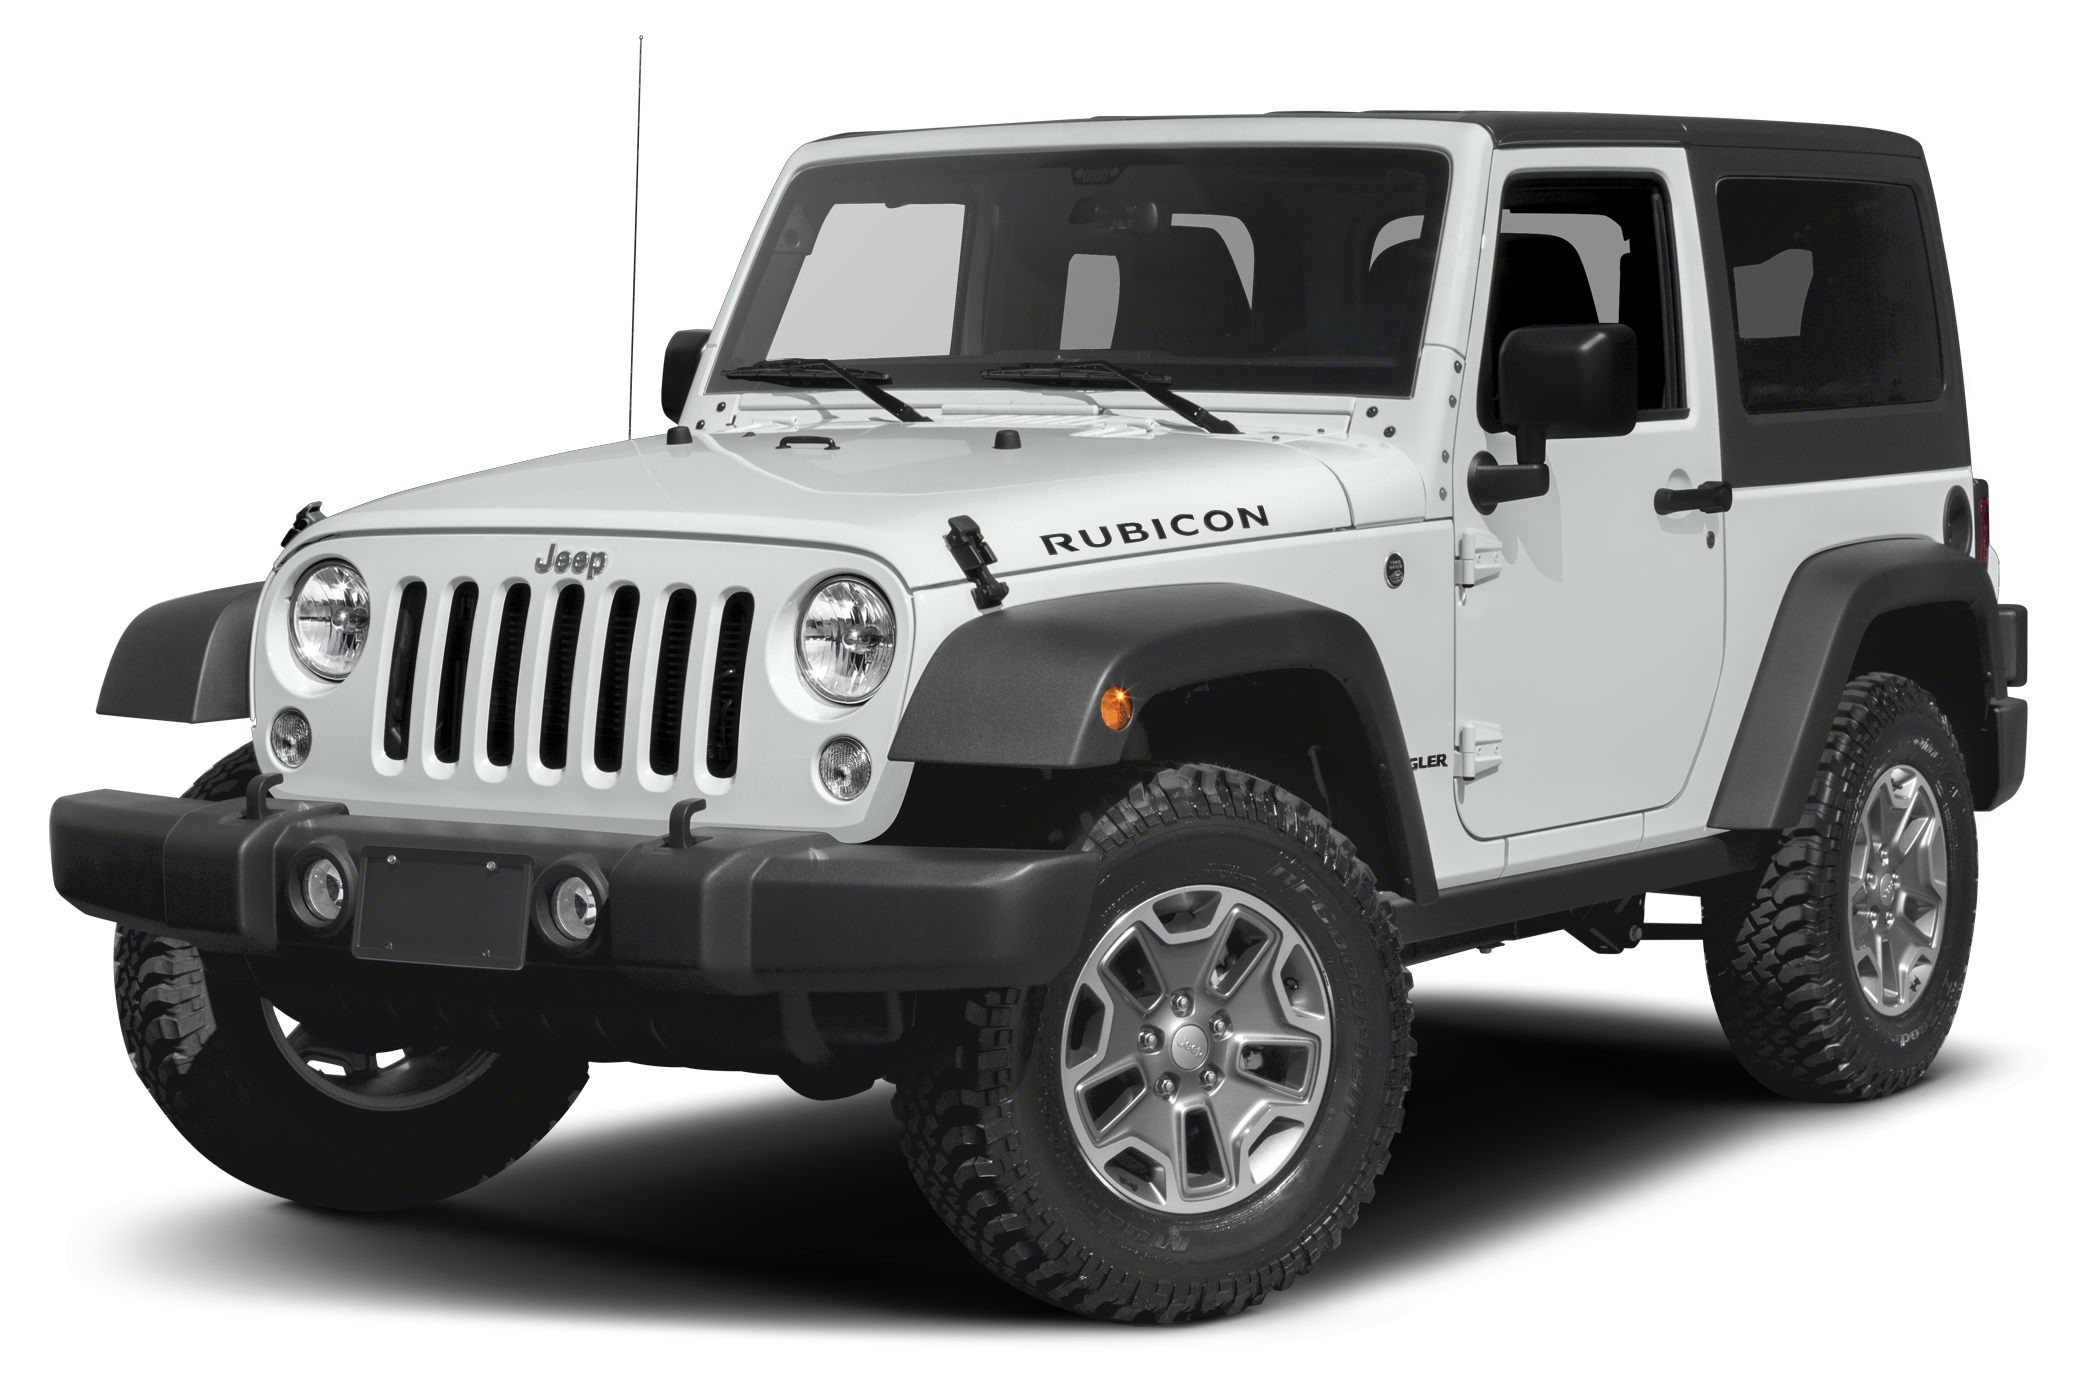 2016 jeep wrangler rubicon 2dr 4x4 specs and prices